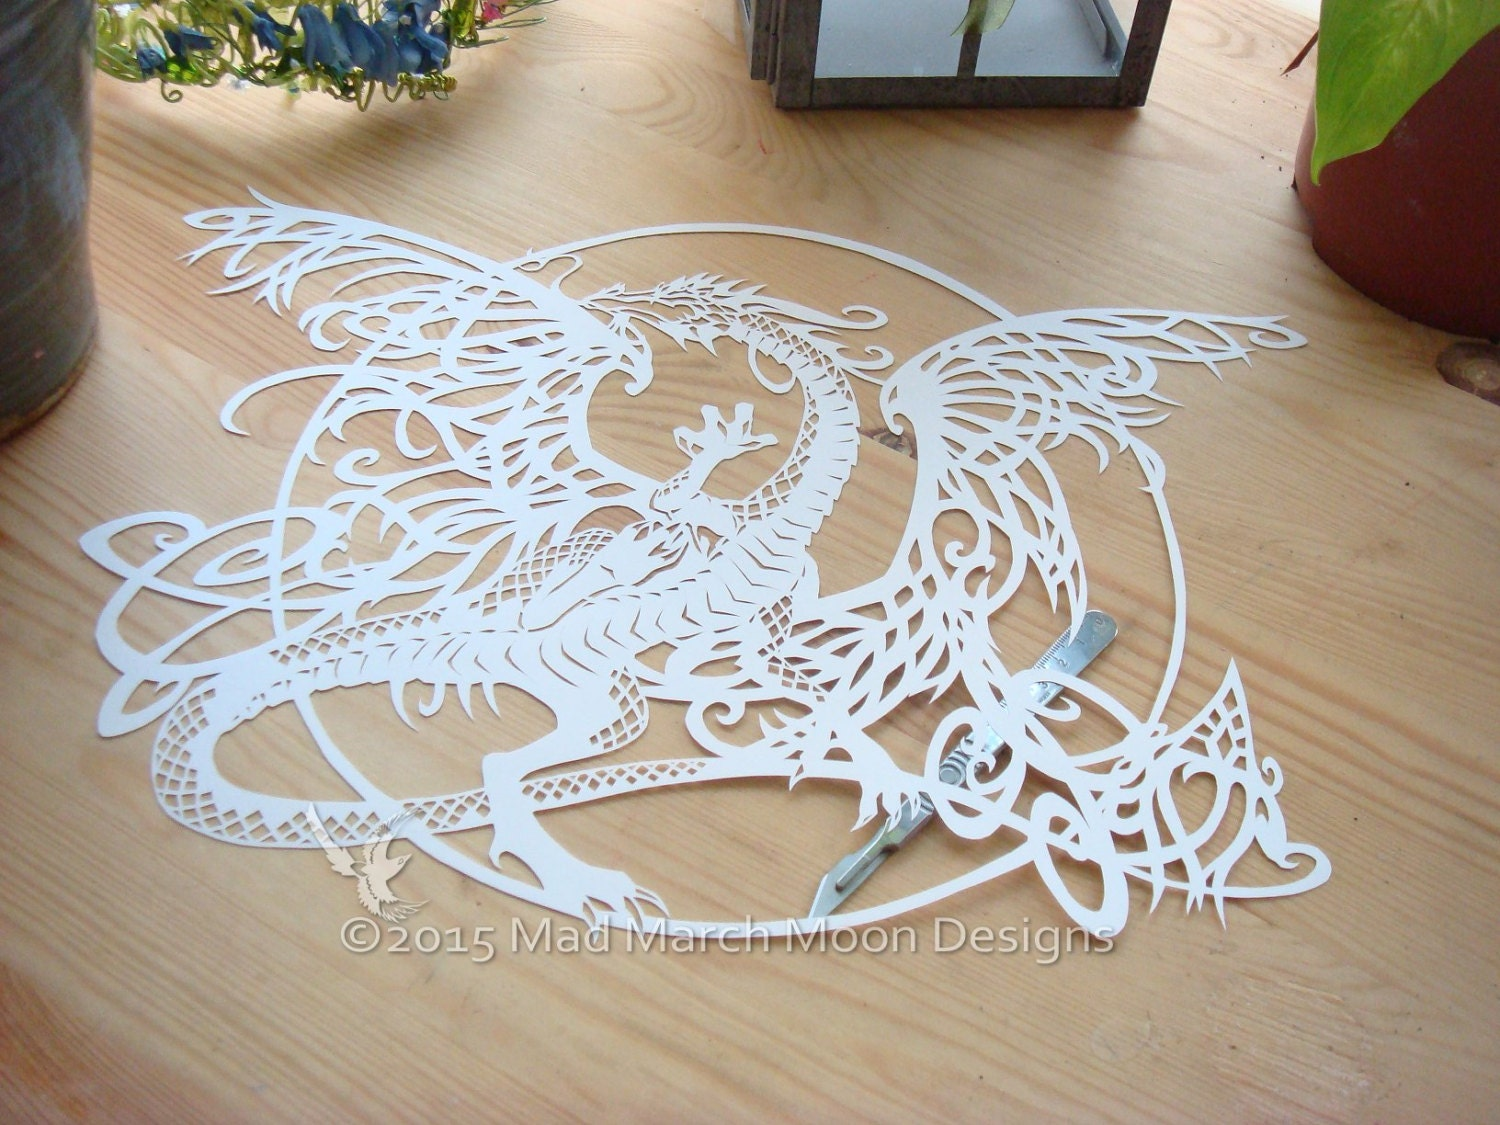 Tangle dragon personal use papercut template pdf download for Chinese paper cutting templates dragon